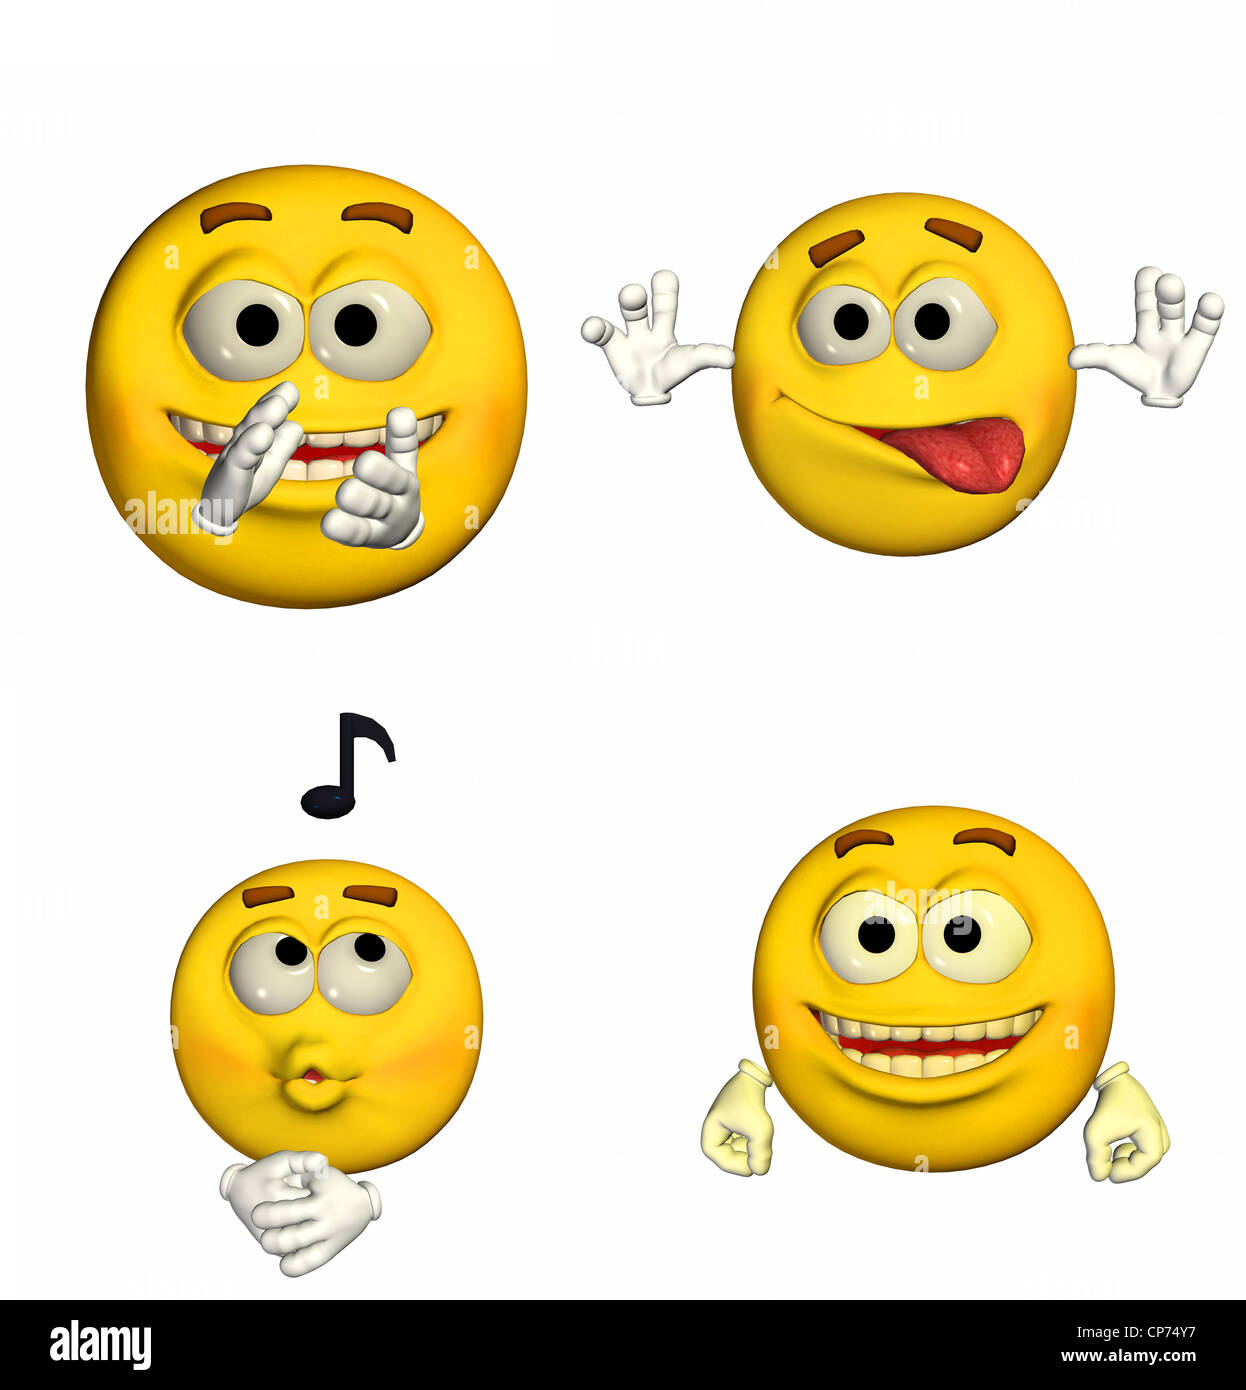 Illustration of a pack of four (4) emoticons / smileys with different poses and expressions isolated on a white - Stock Image